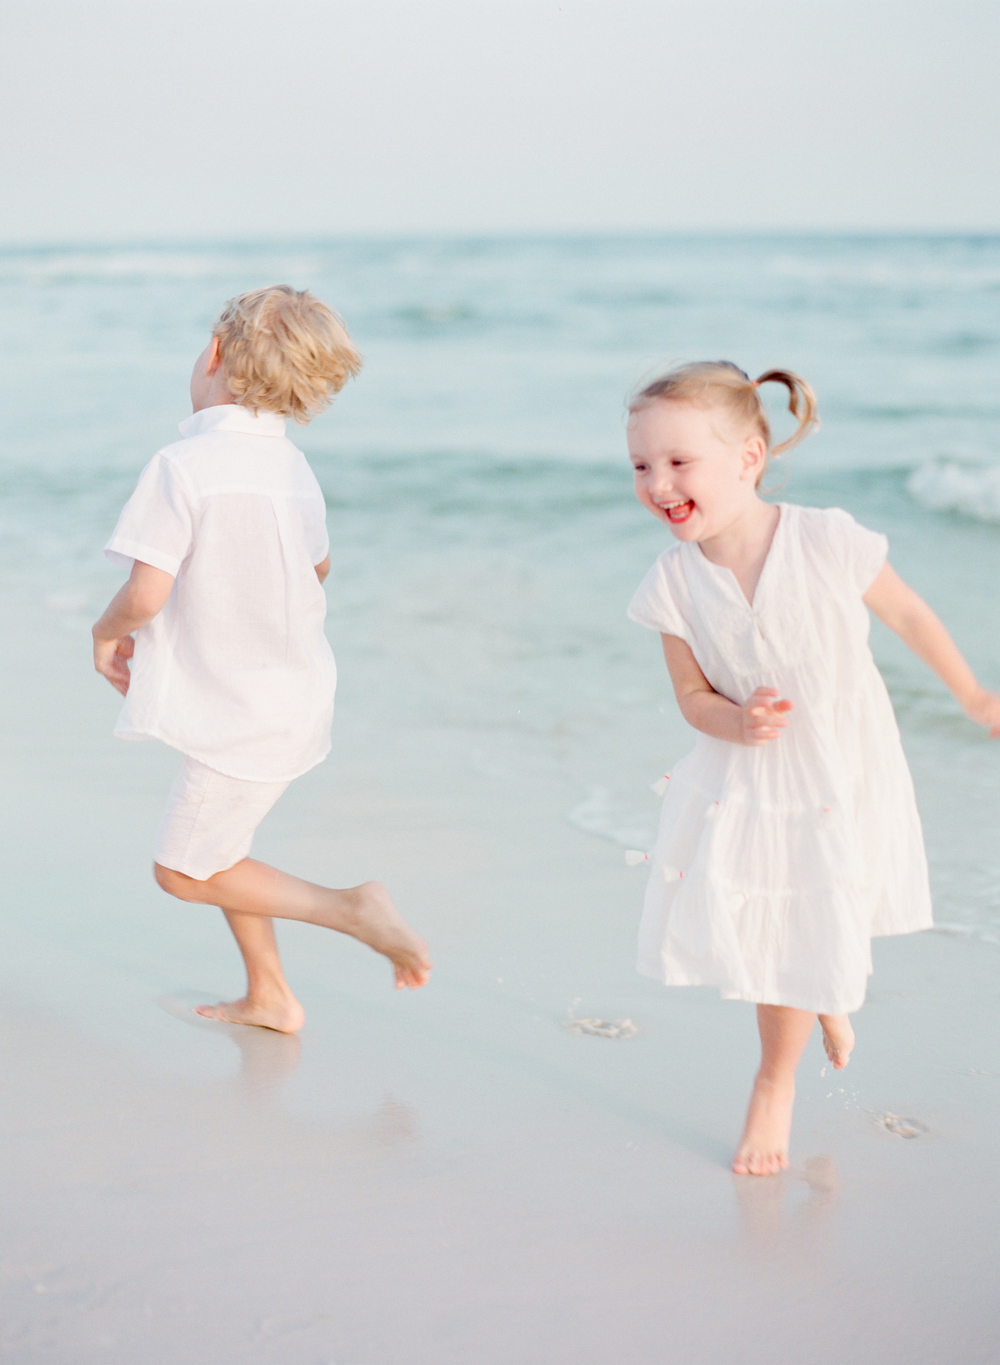 Kids playing at the beach | Kaylie B. Poplin Photography | Watercolor, Florida Fine Art Family & Wedding Photographer